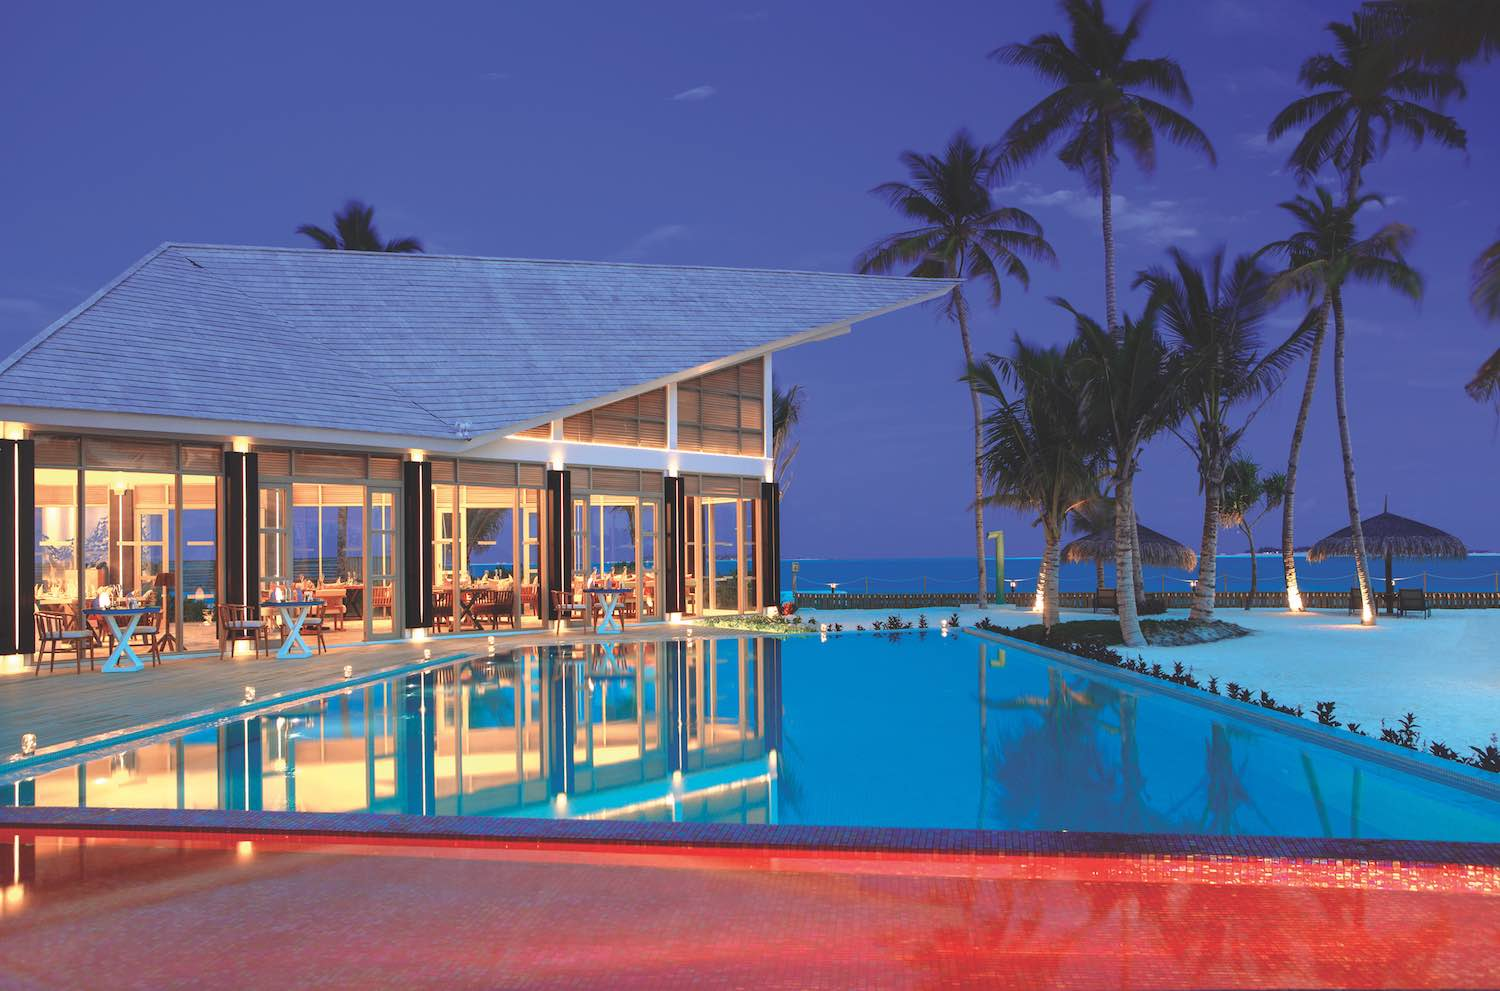 maldives-oblu-select-at-sangeli-adults-only-poolside-and-restaurant-holiday-honeymoon-vacation-invite-to-paradise.jpg